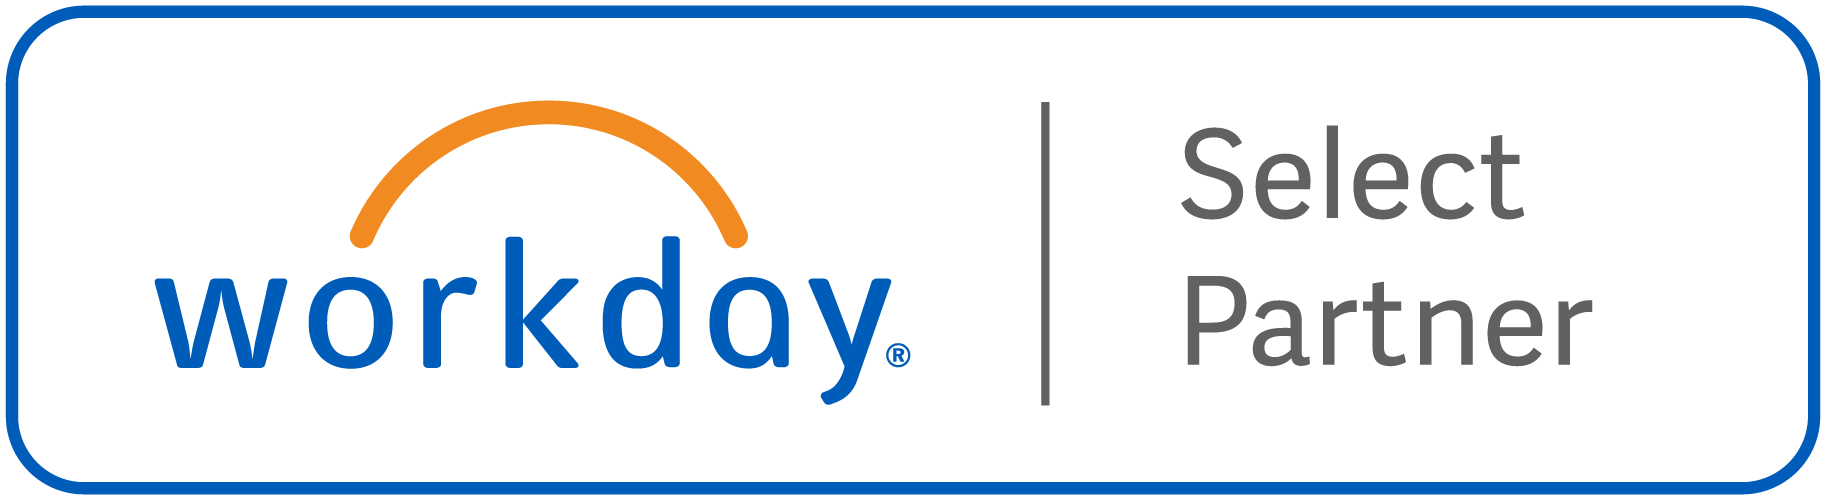 Workday Select Partner